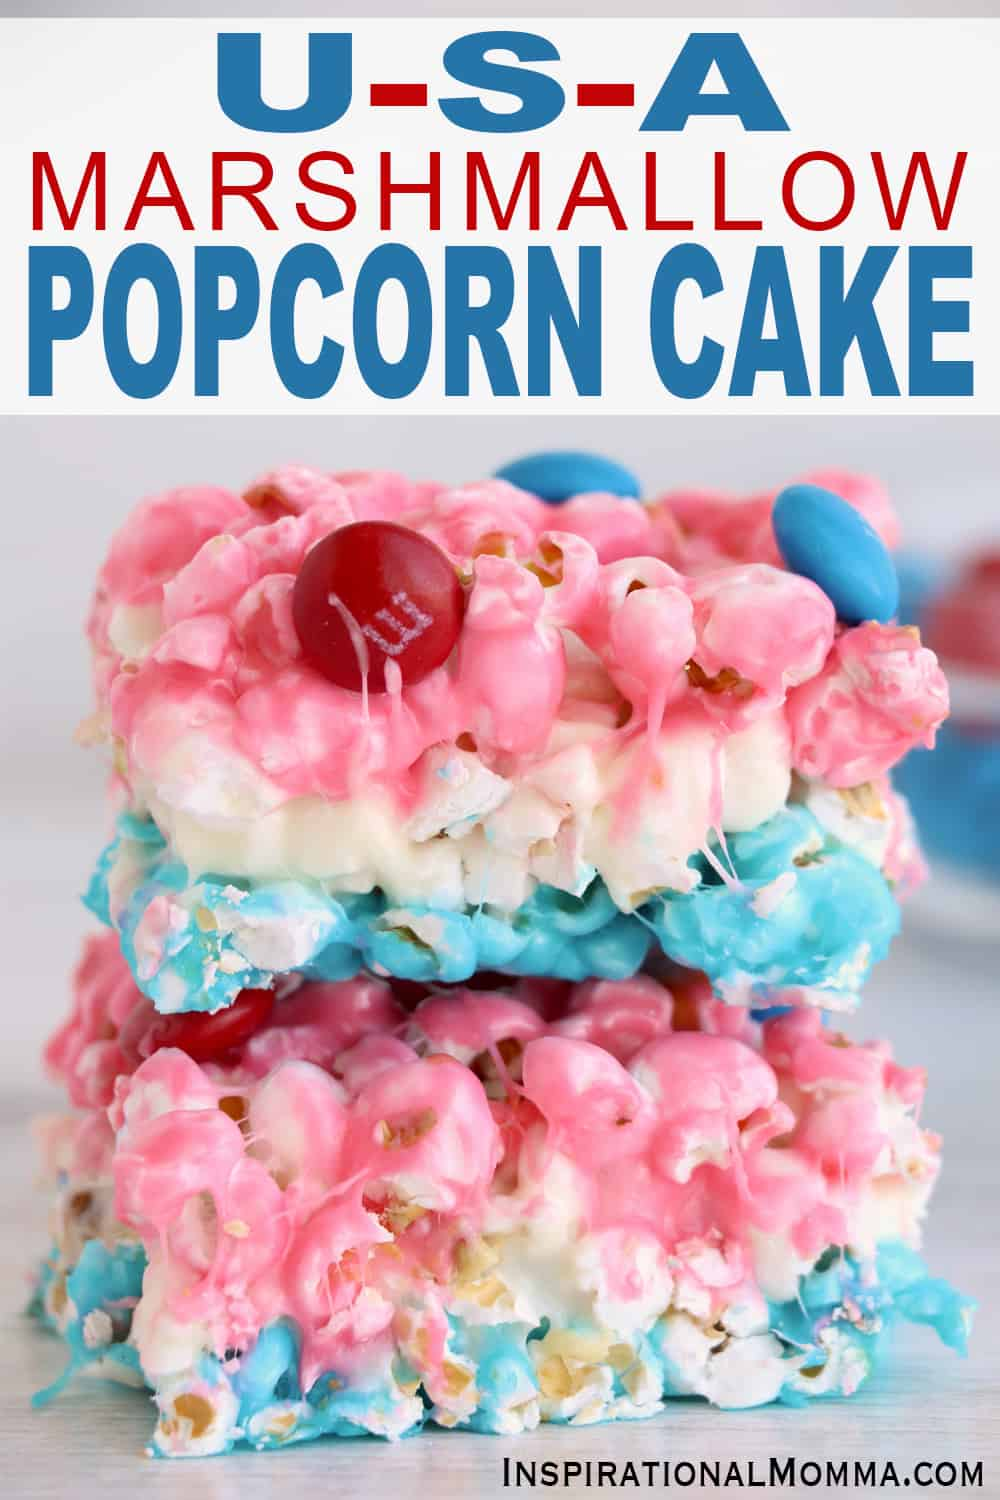 Show your American pride with this easy, irresistible Marshmallow Popcorn Cake. Only 5 ingredients needed for sweet deliciousness! #inspirationalmomma #marshmallowpopcorncake #popcorncake #USA #patriotic #American #popcorndessert #desserts #dessertrecipes #4thofjuly